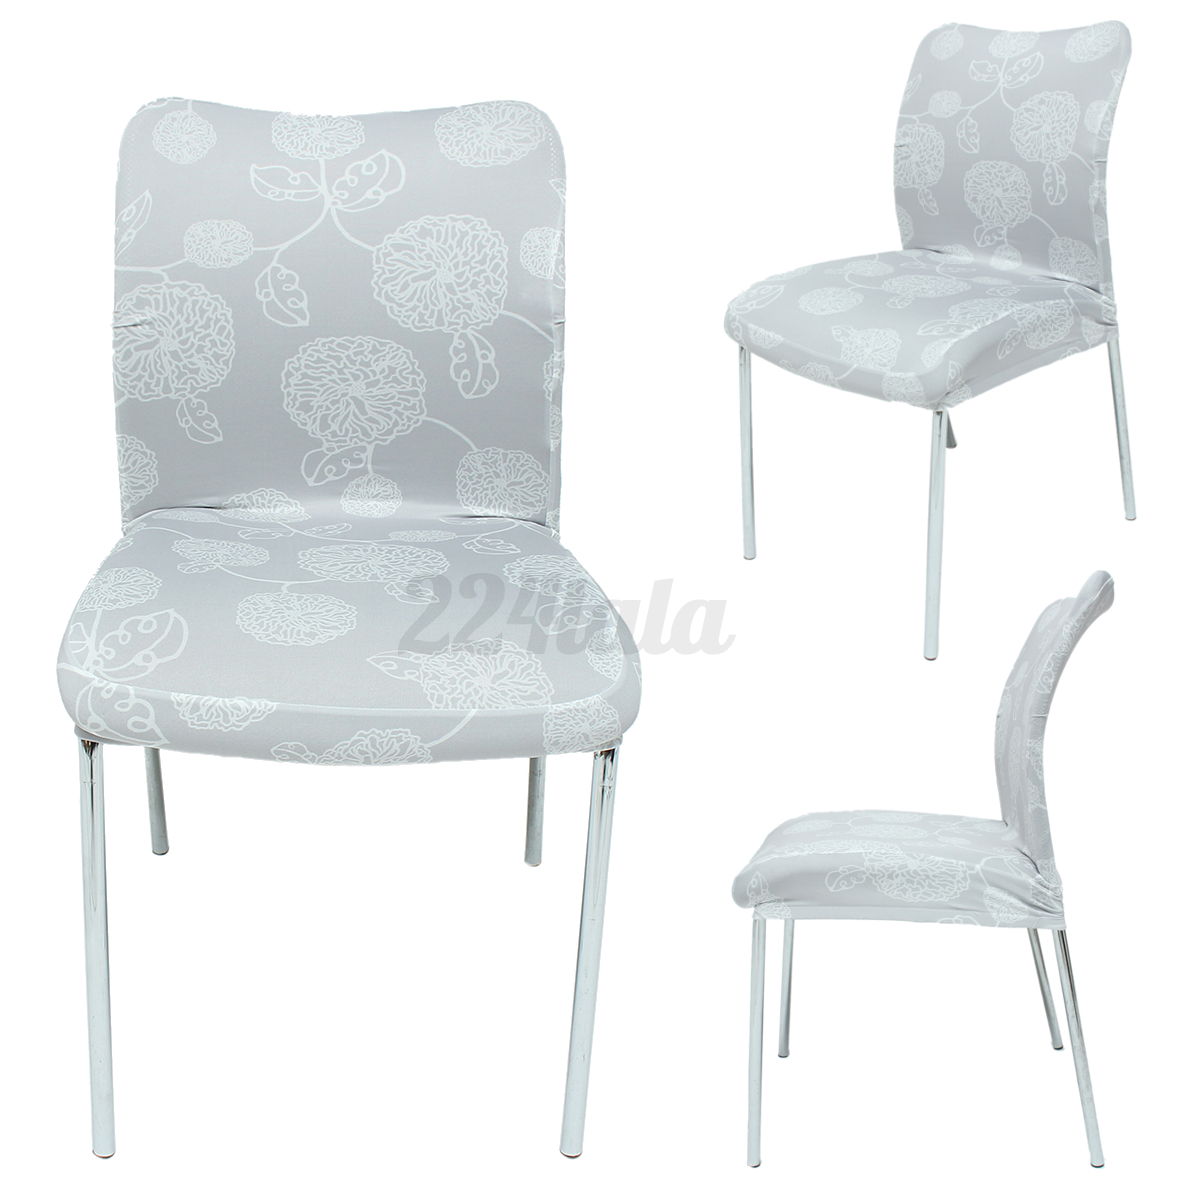 gray universal chair seat cover high elastic chair cover. Black Bedroom Furniture Sets. Home Design Ideas